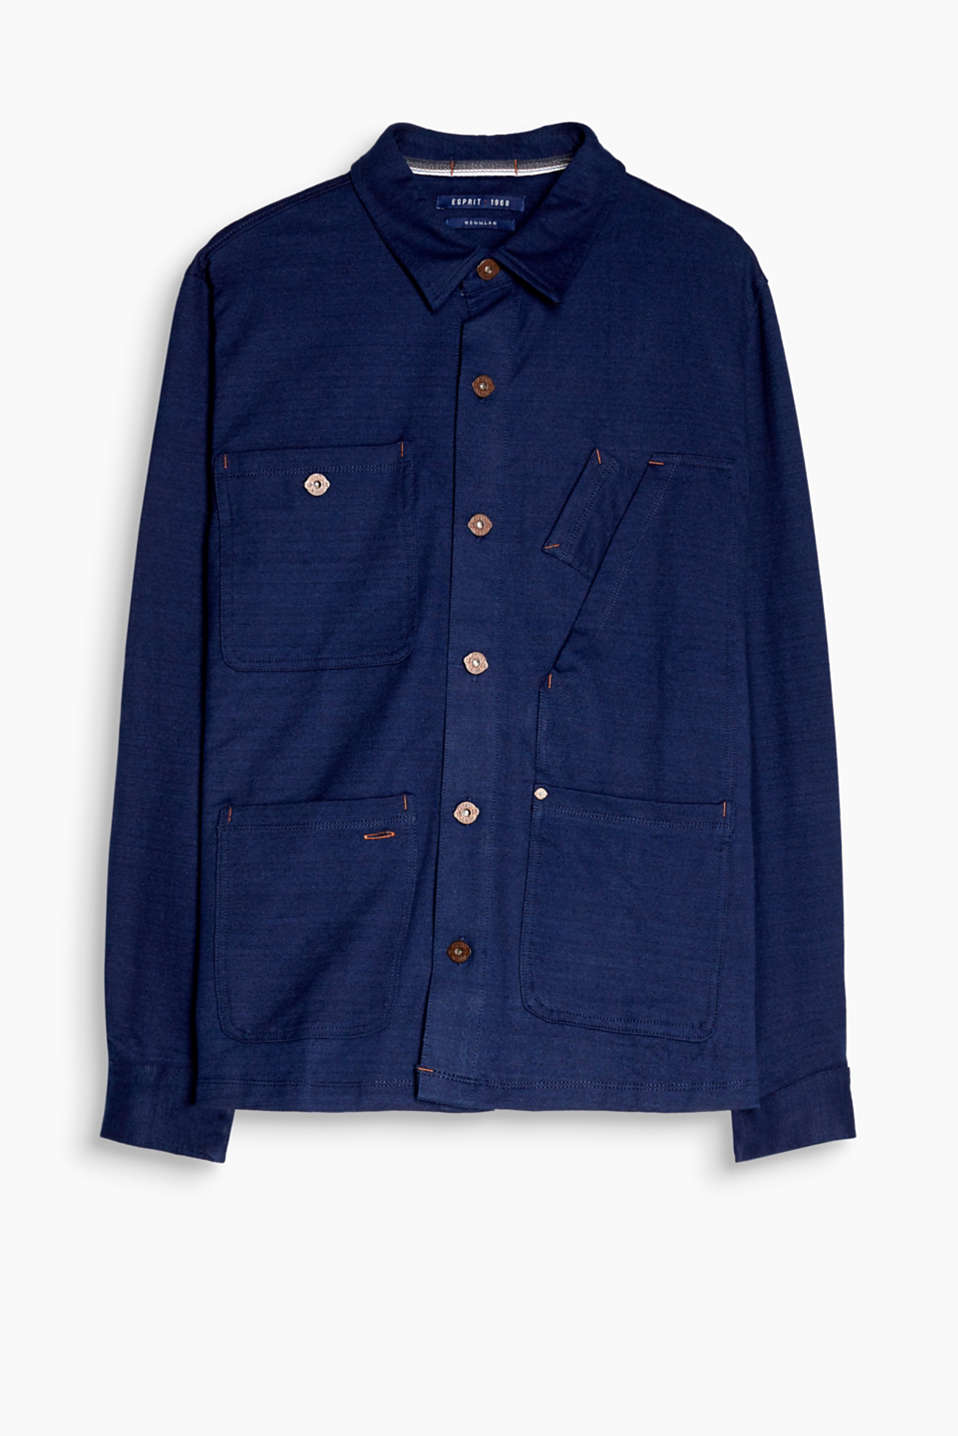 Workwear-inspired! The heavy jersey and high-quality indigo dye make this jacket bang on trend.